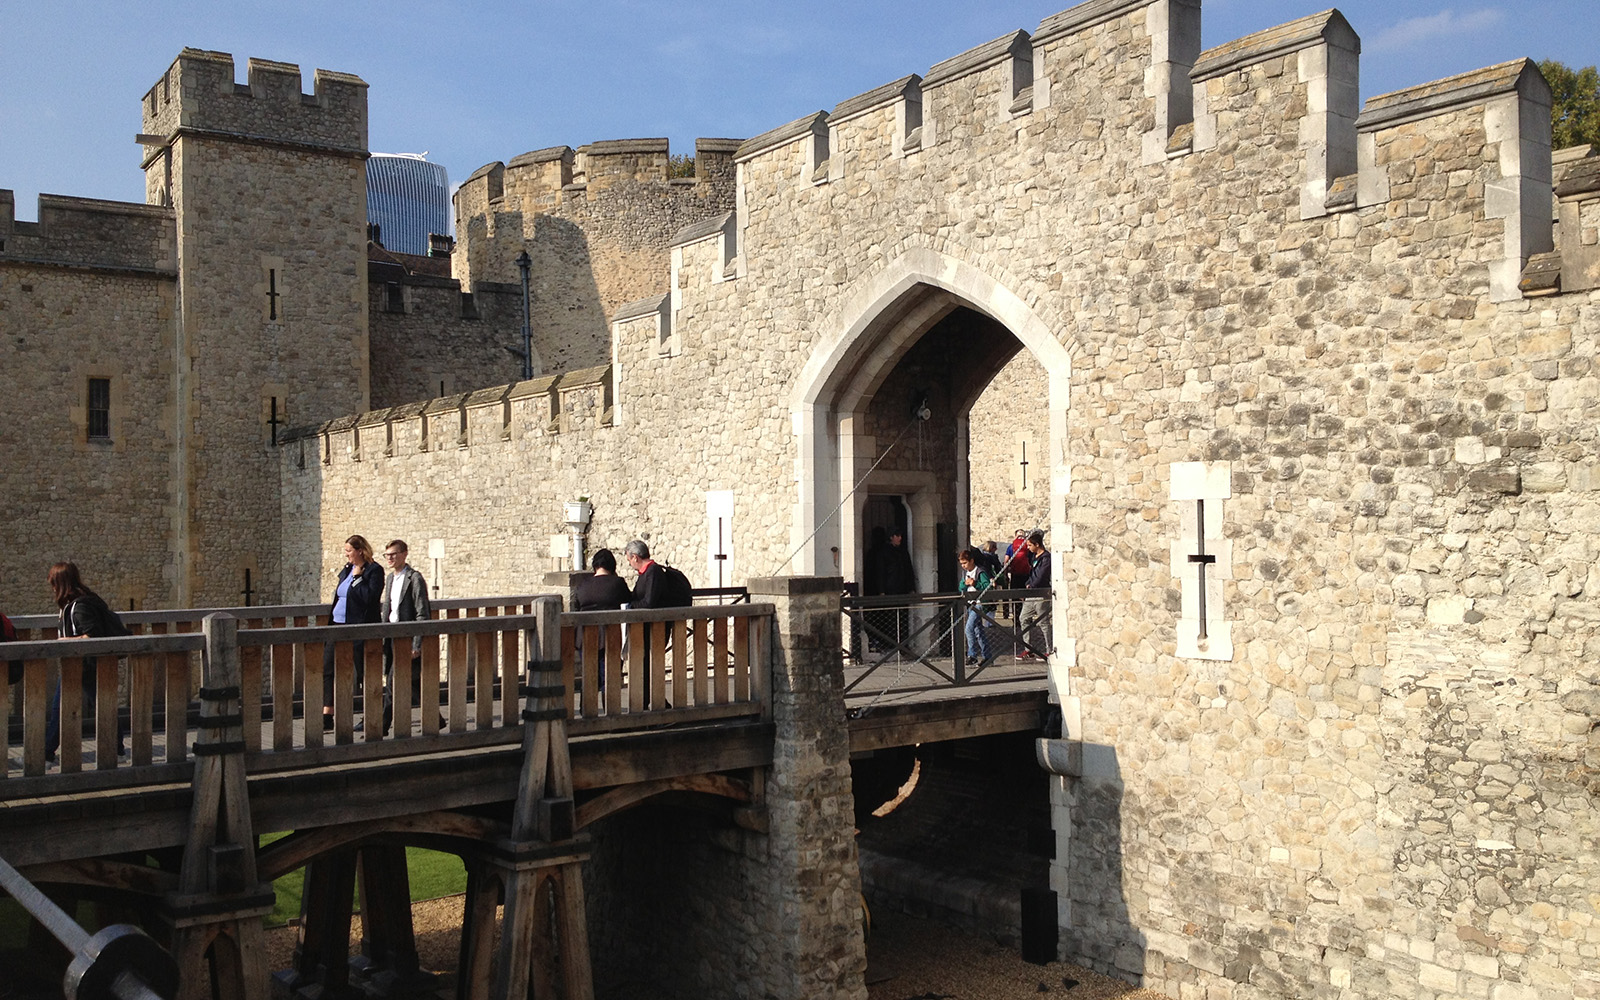 Tower of London, 4 October 2015